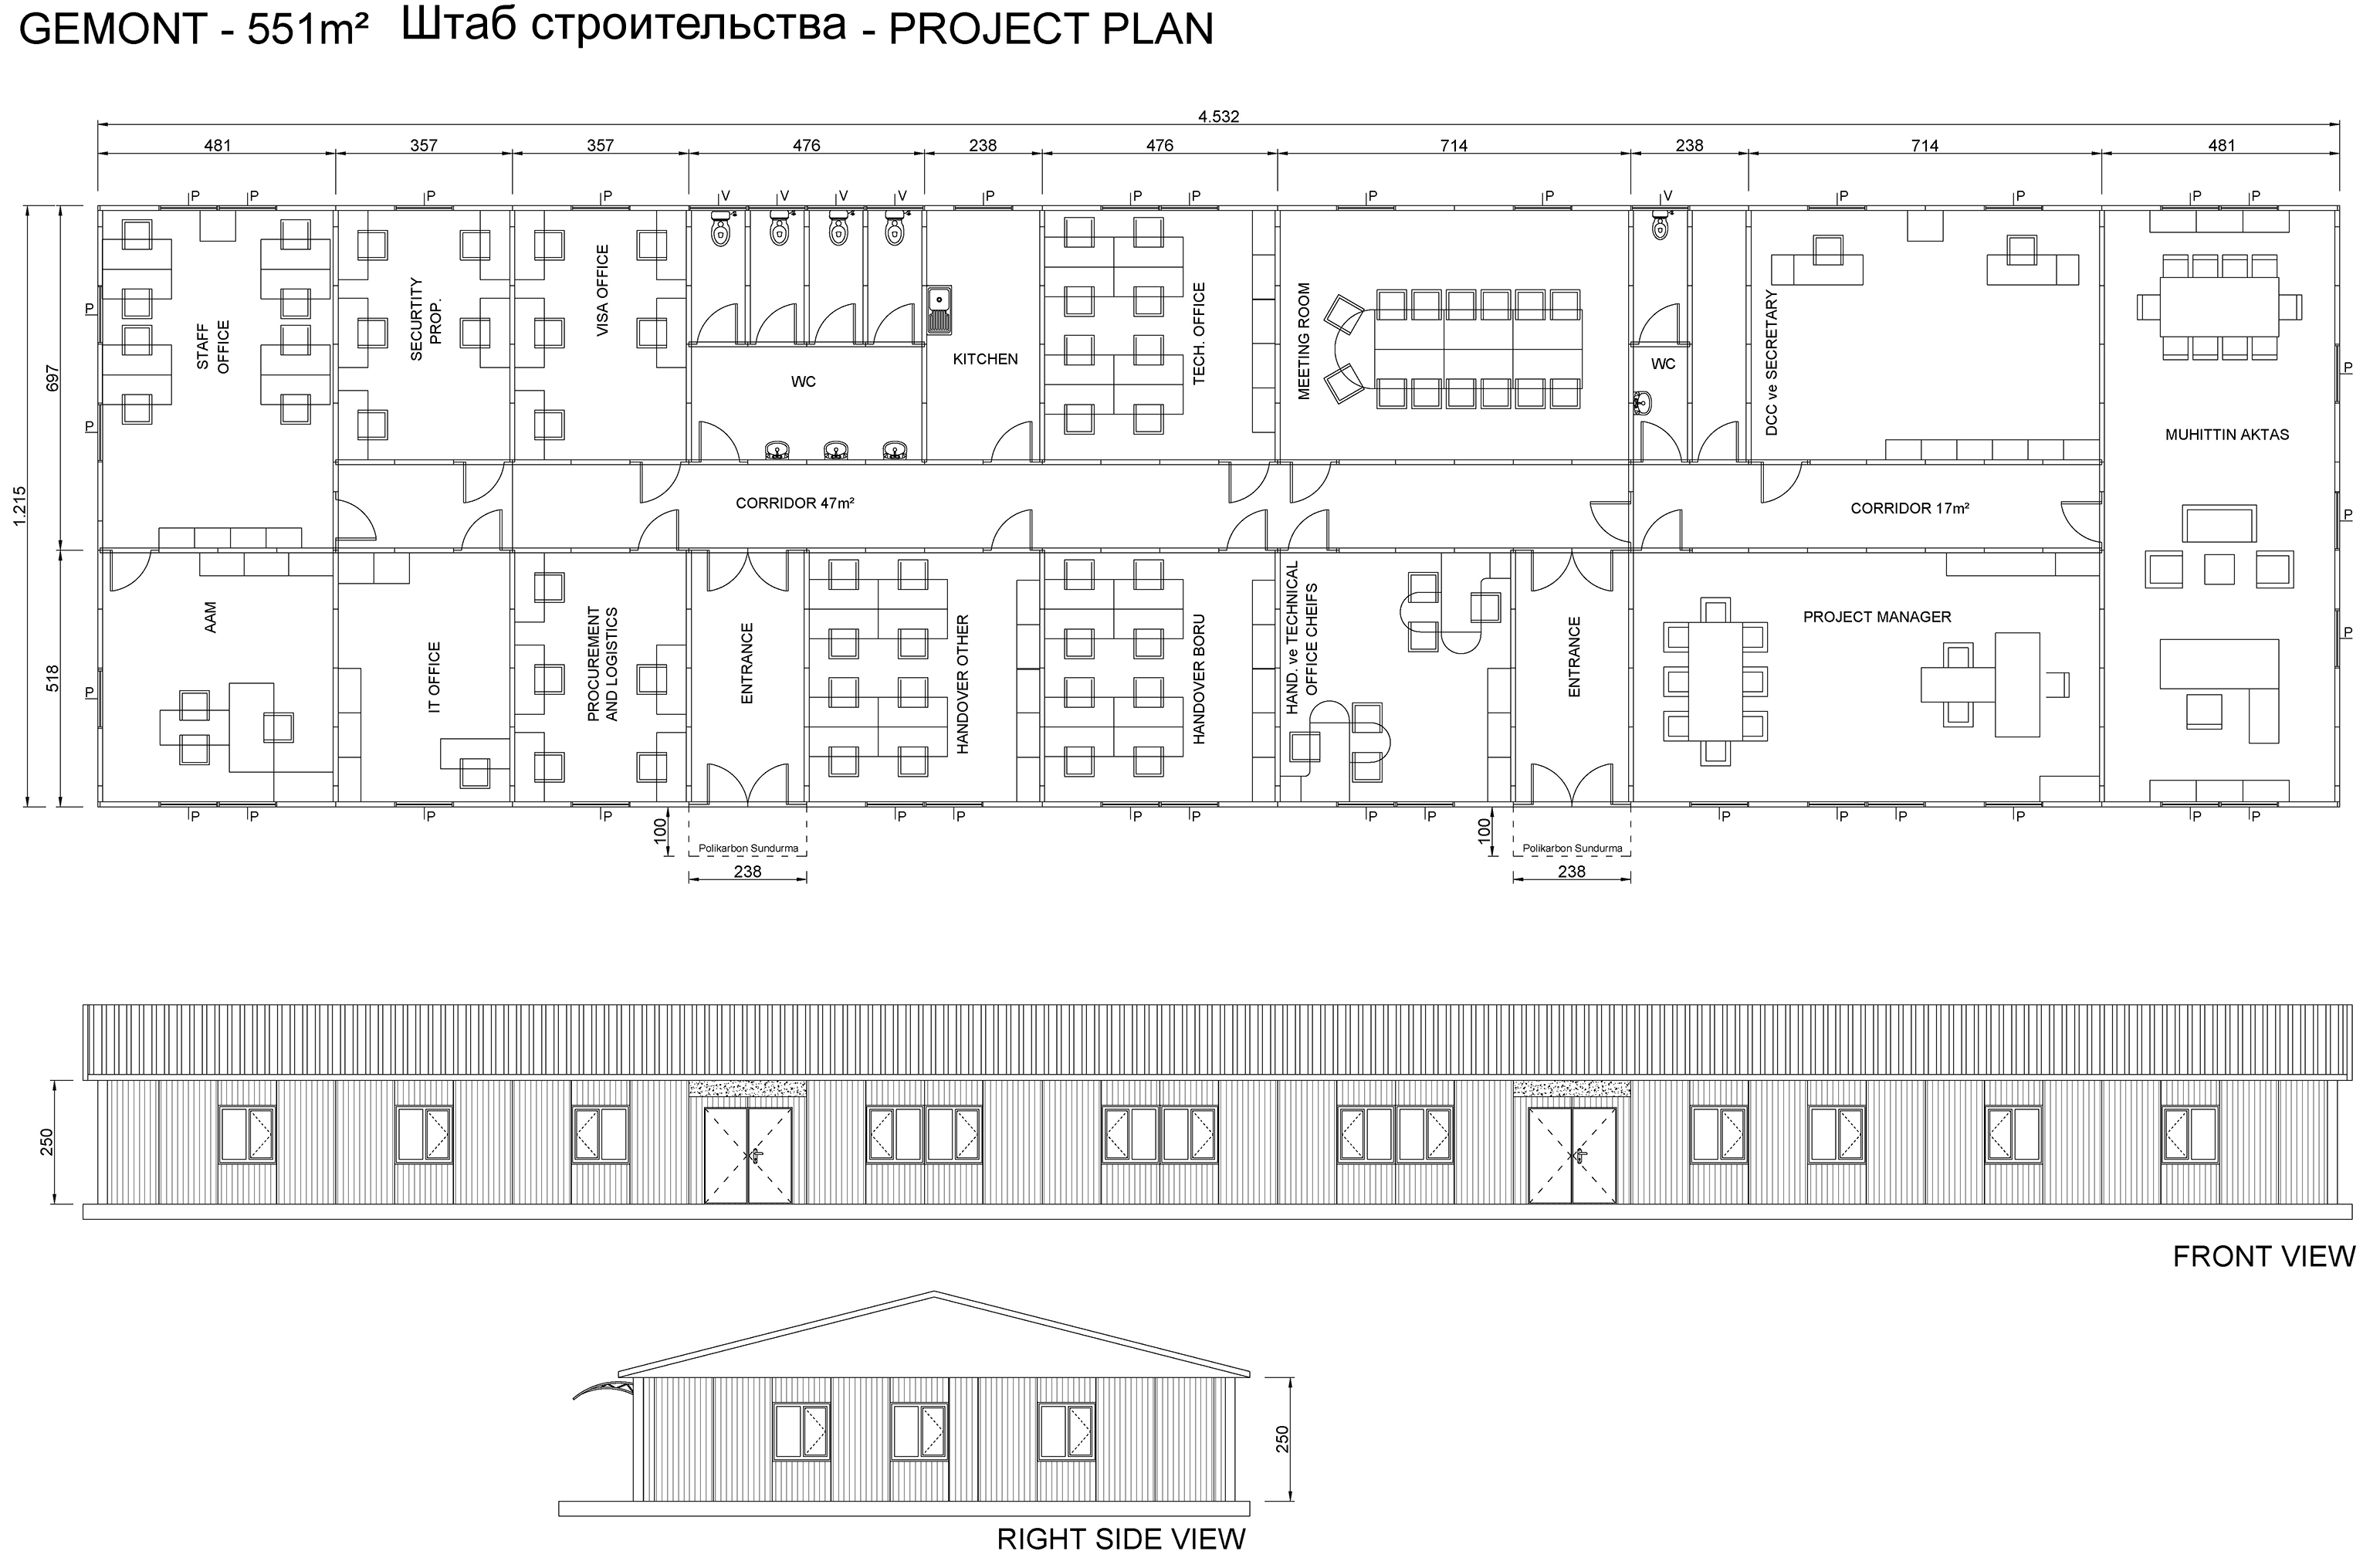 gemont 551m² PREFABRICATED SITE OFFICE BUILDING - PROJECT PLAN